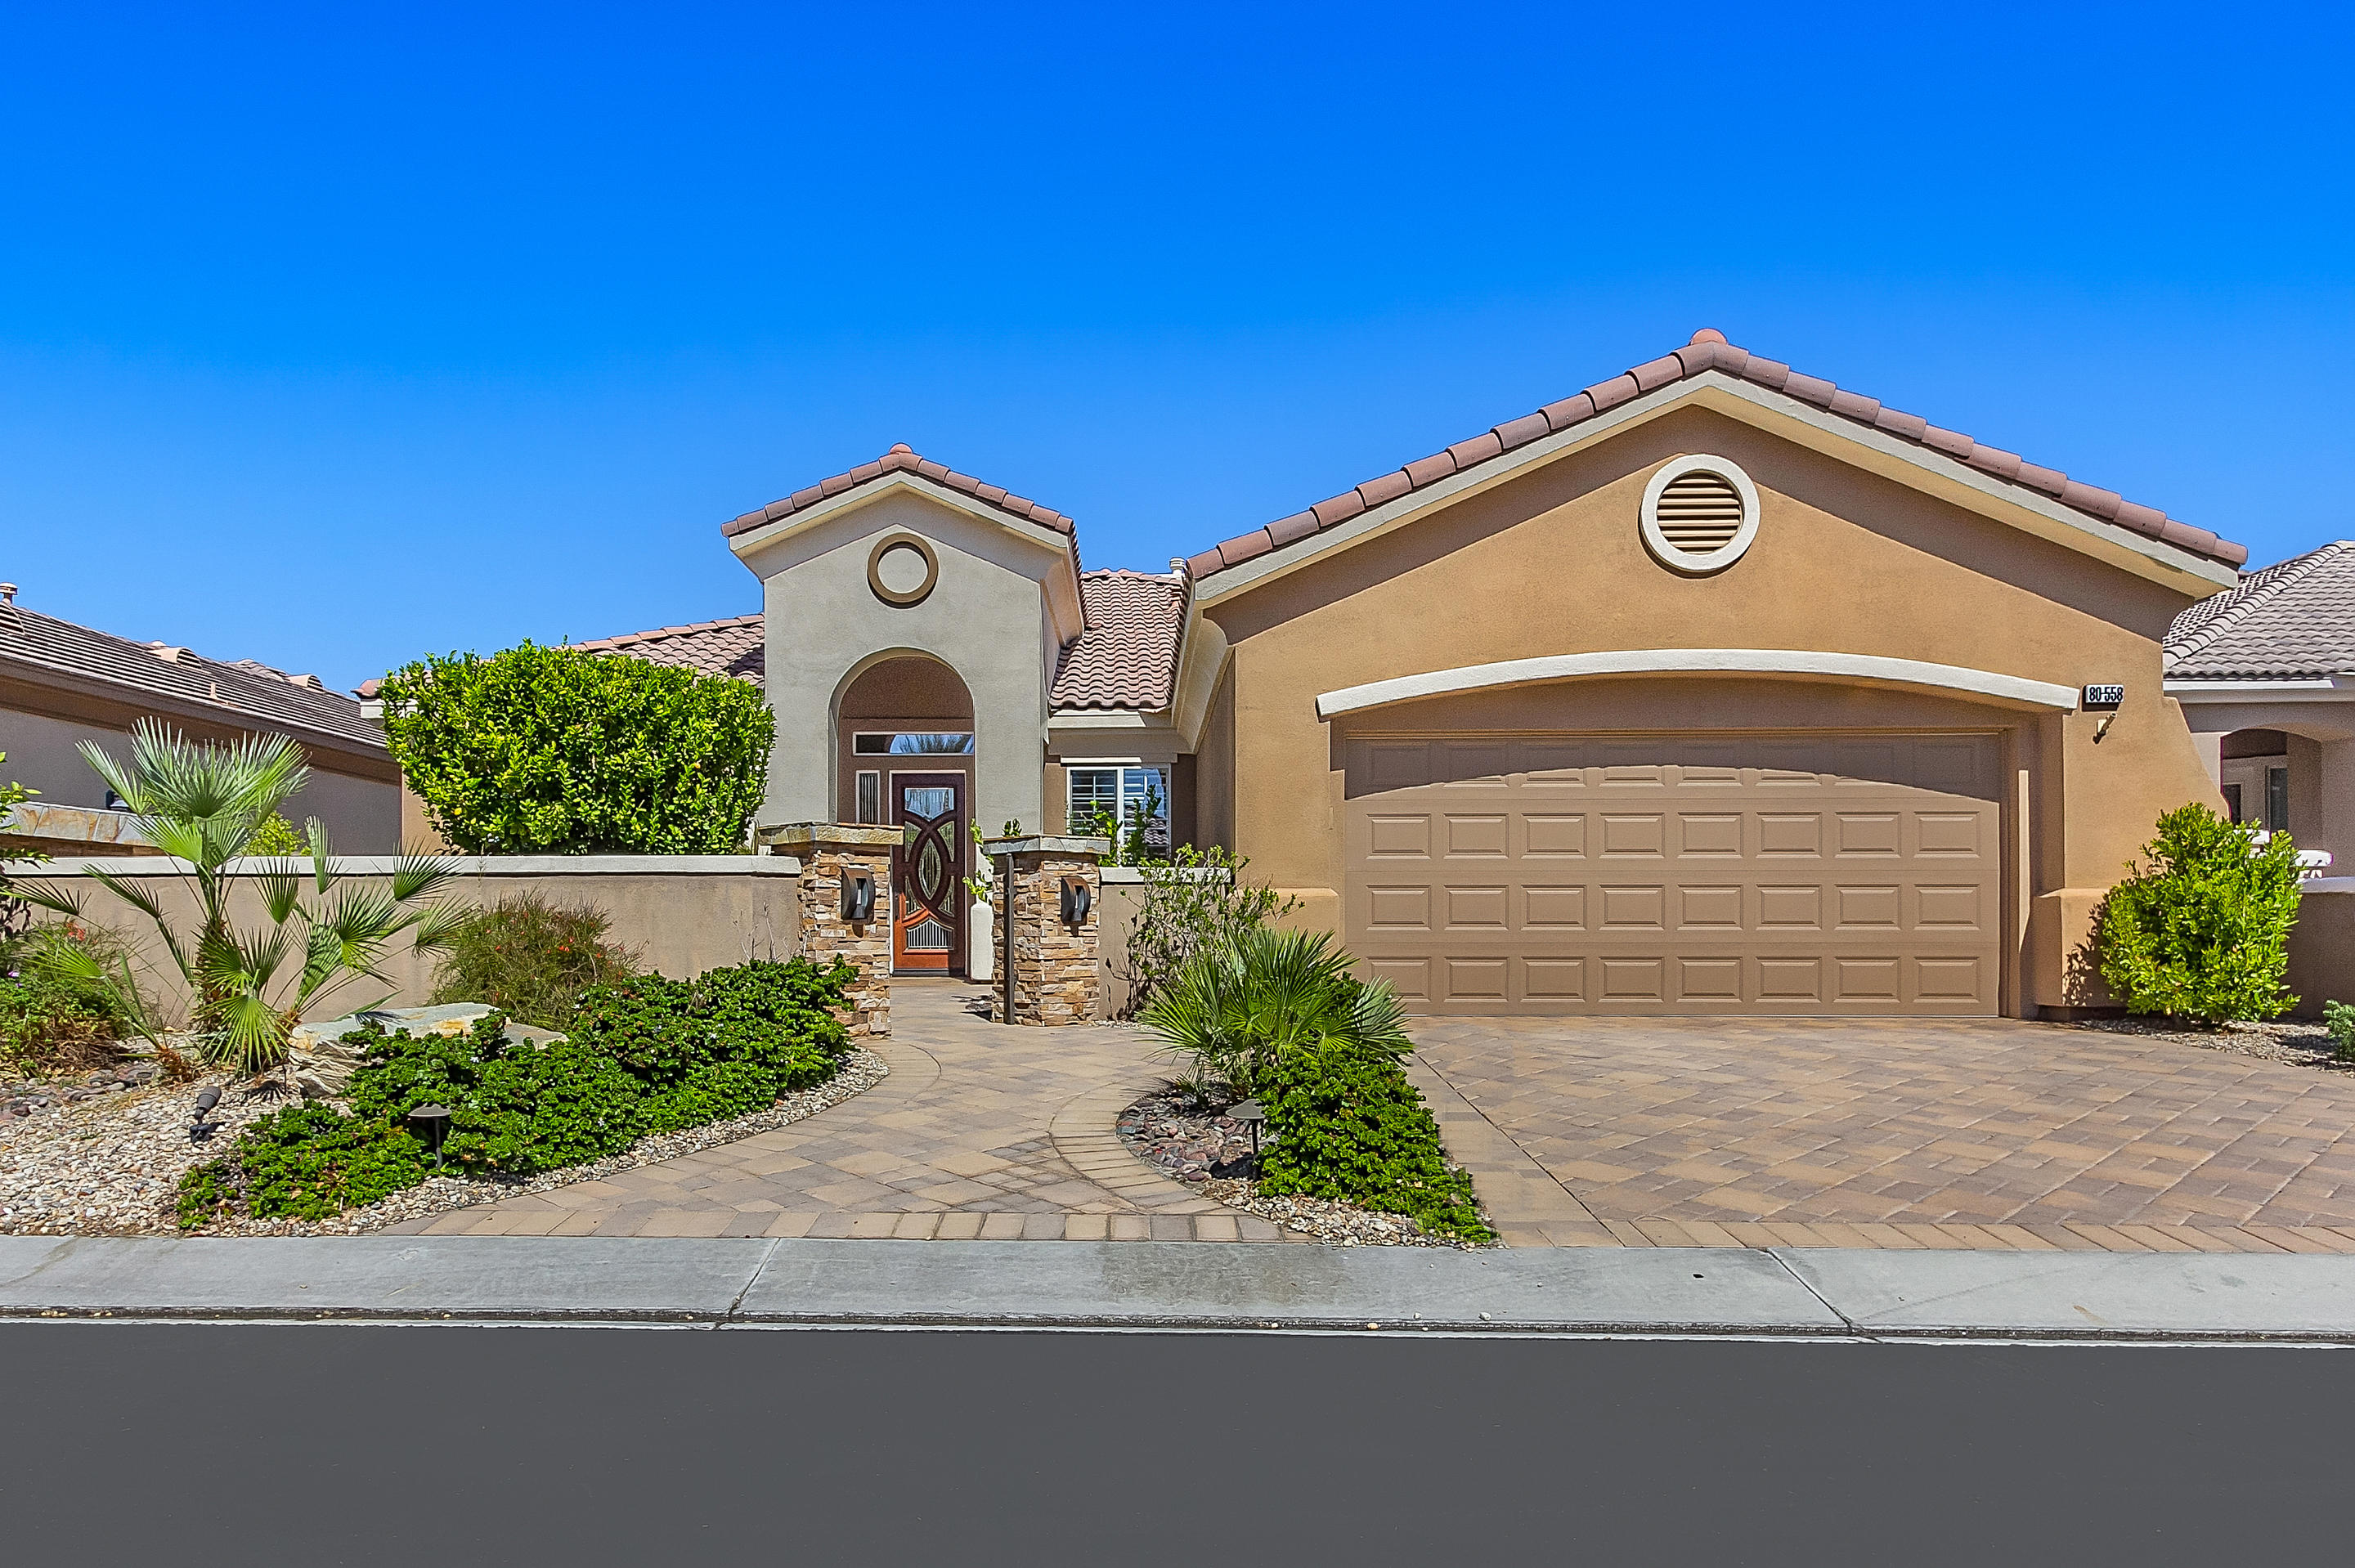 Photo of 80558 Knightswood Road, Indio, CA 92201